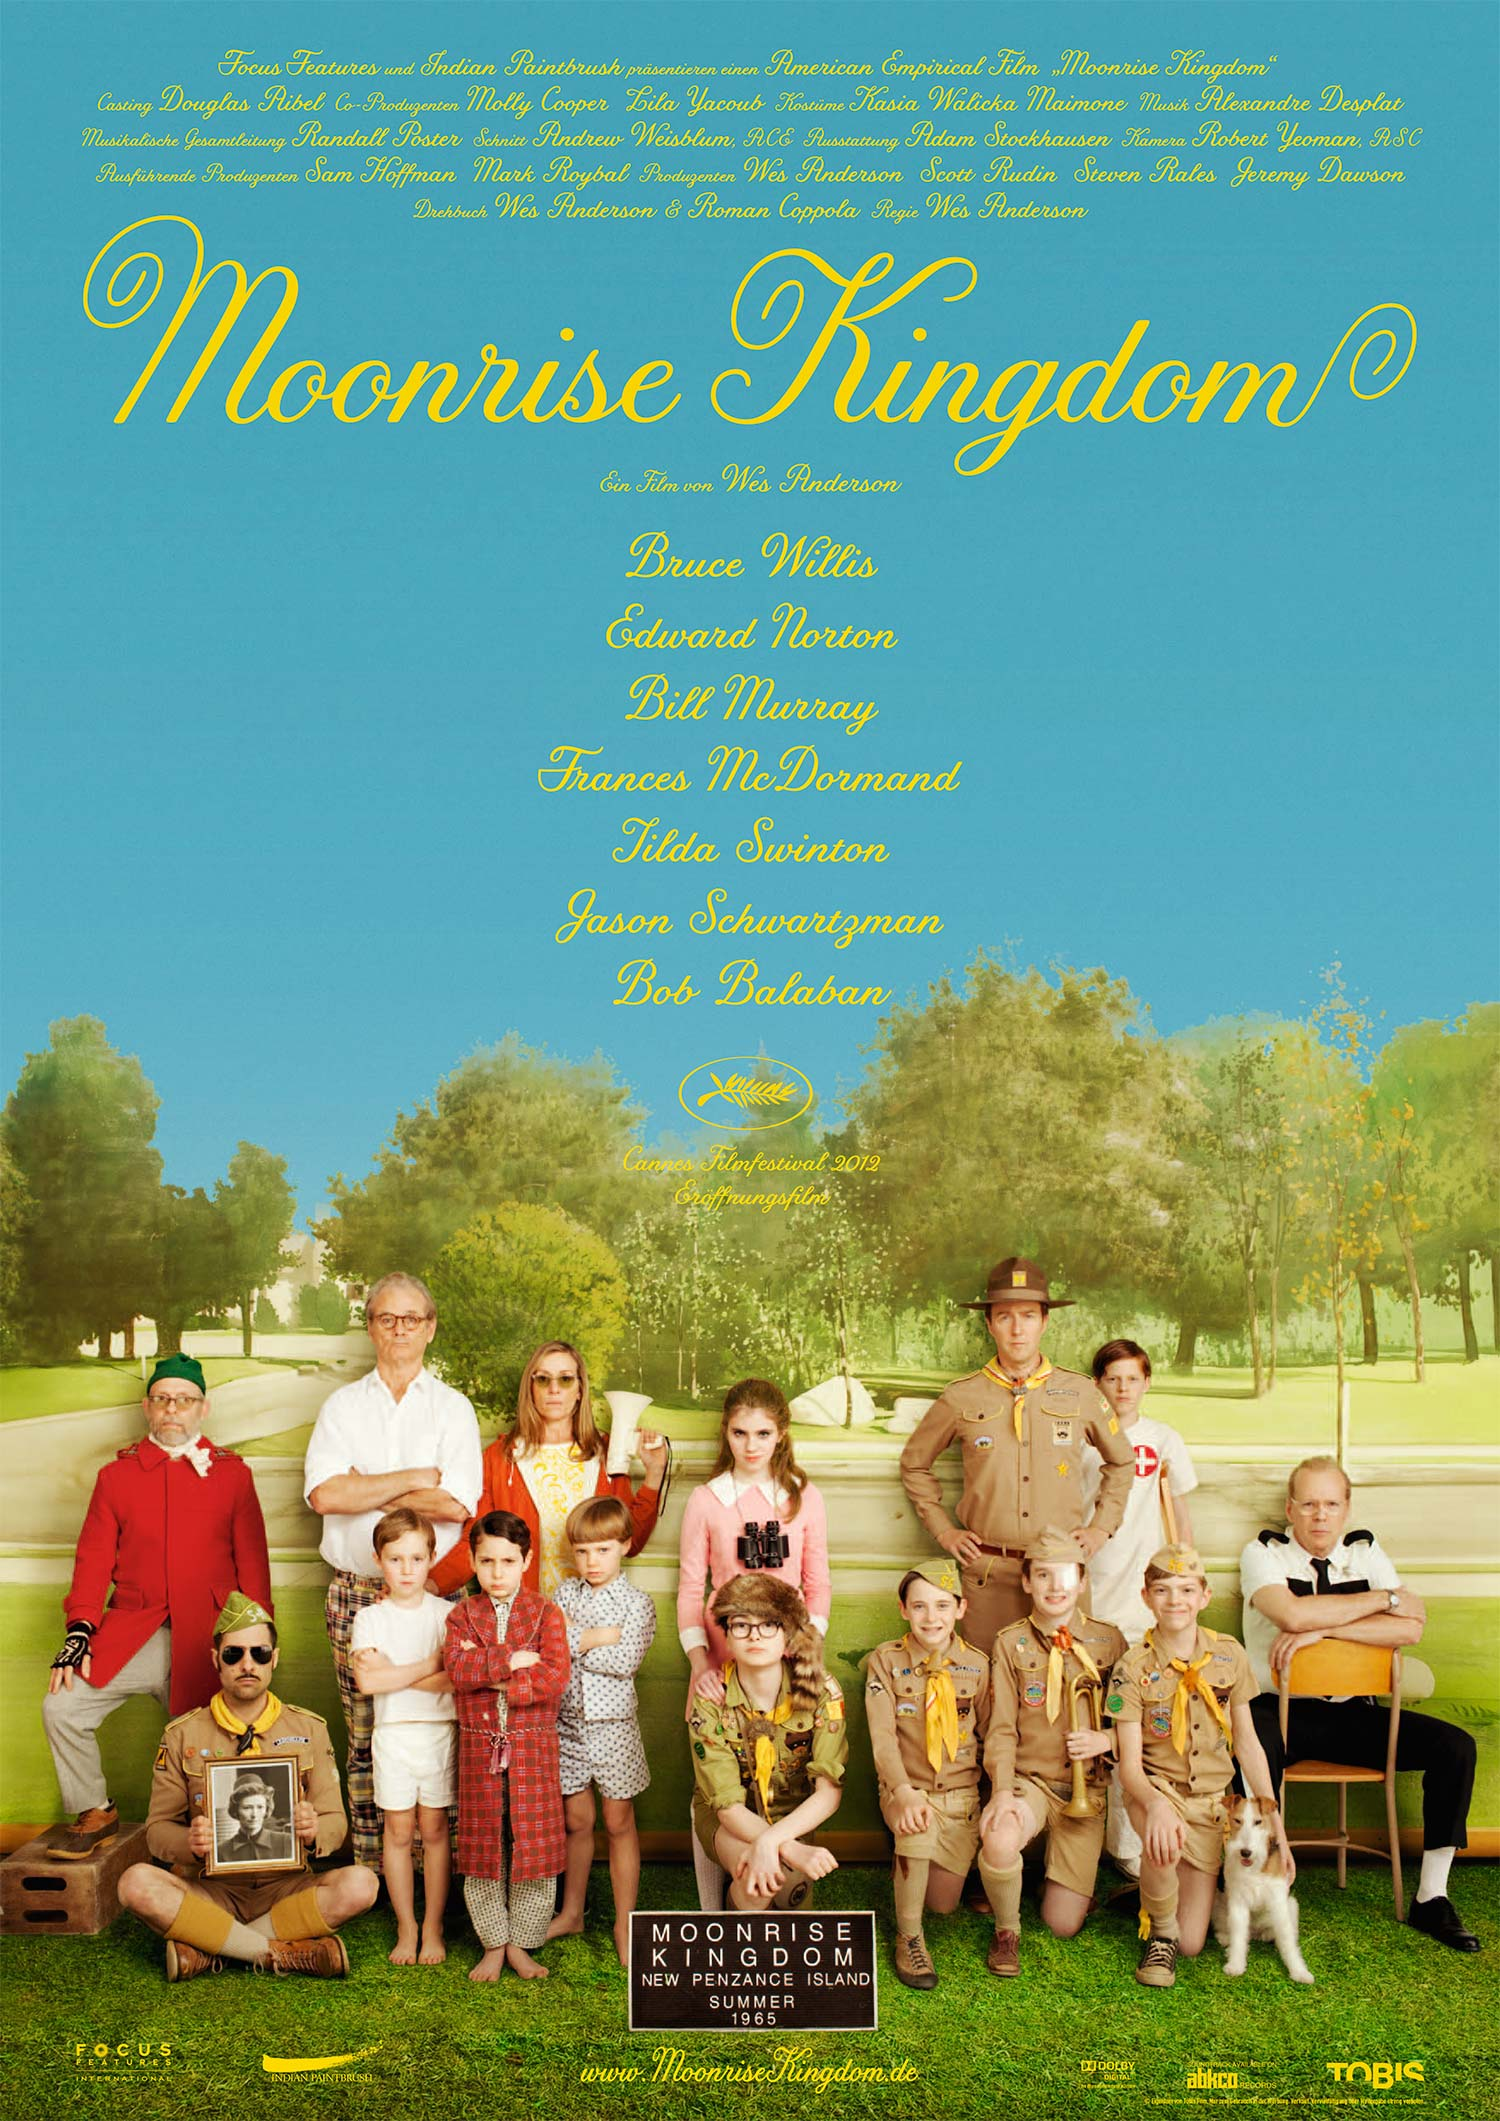 "Tobis<a href=""/moonrise-kingdom"">→</a><strong>Adaption</strong>"